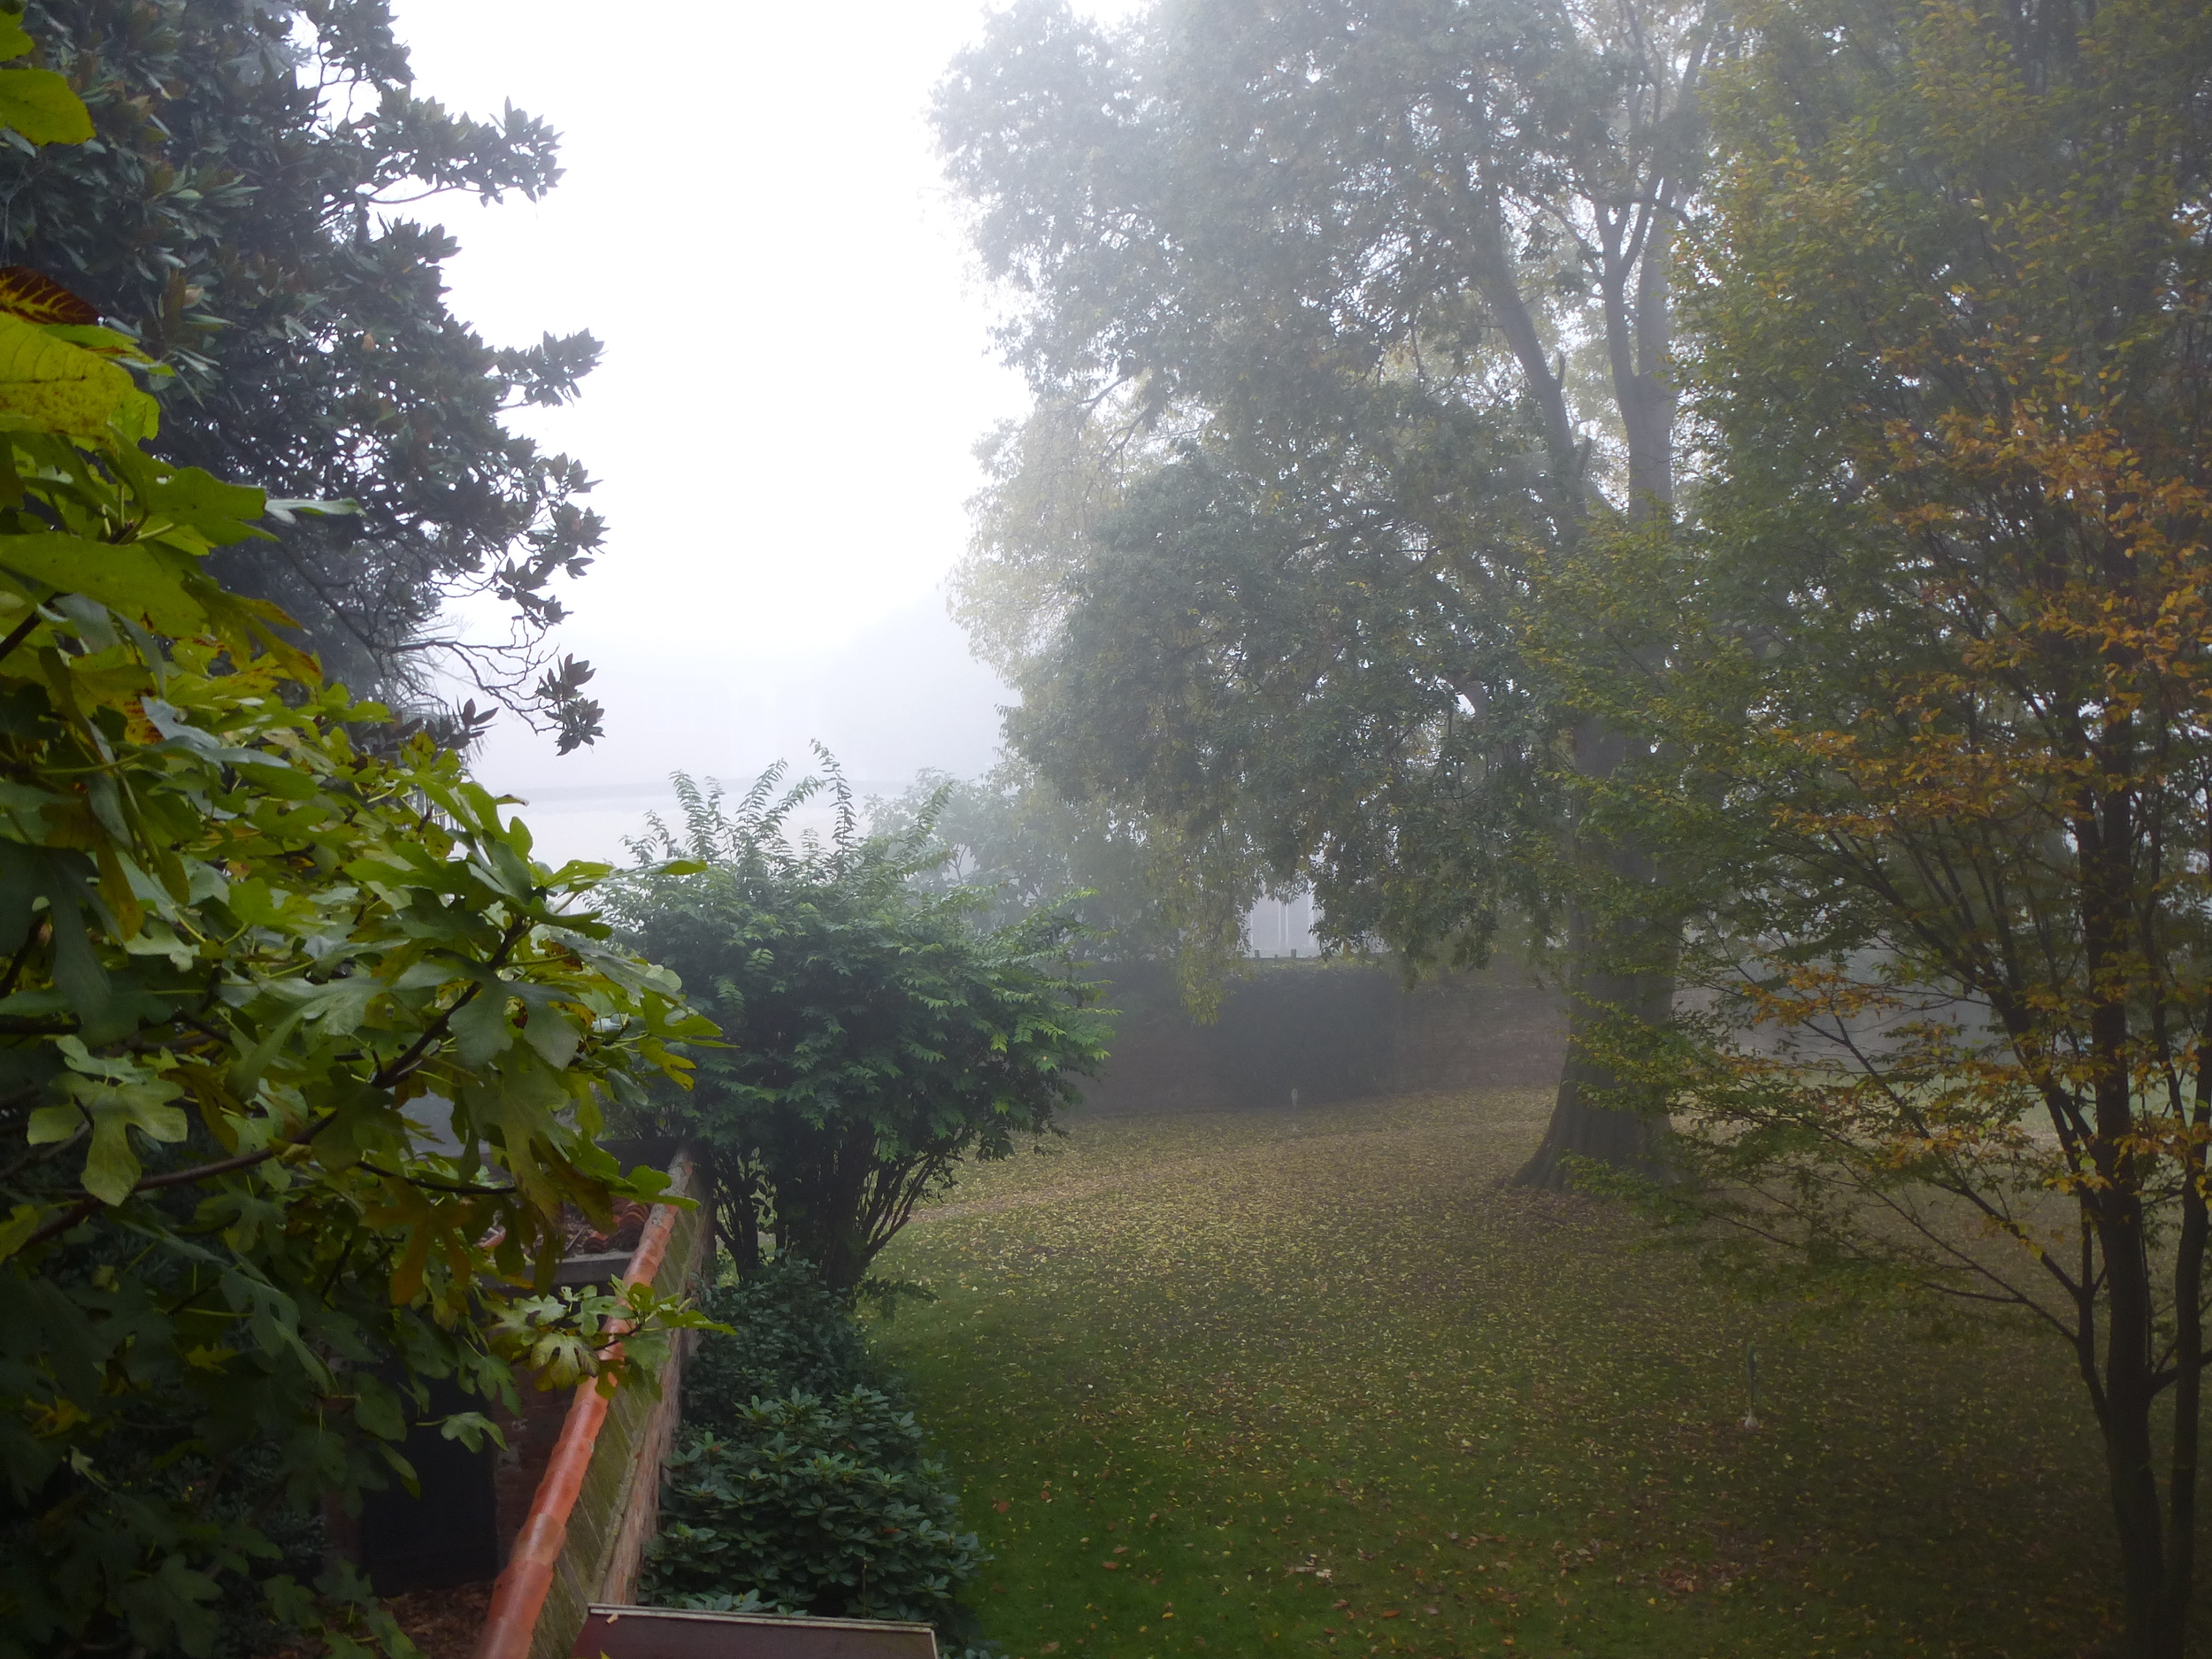 The hidden garden in the mist